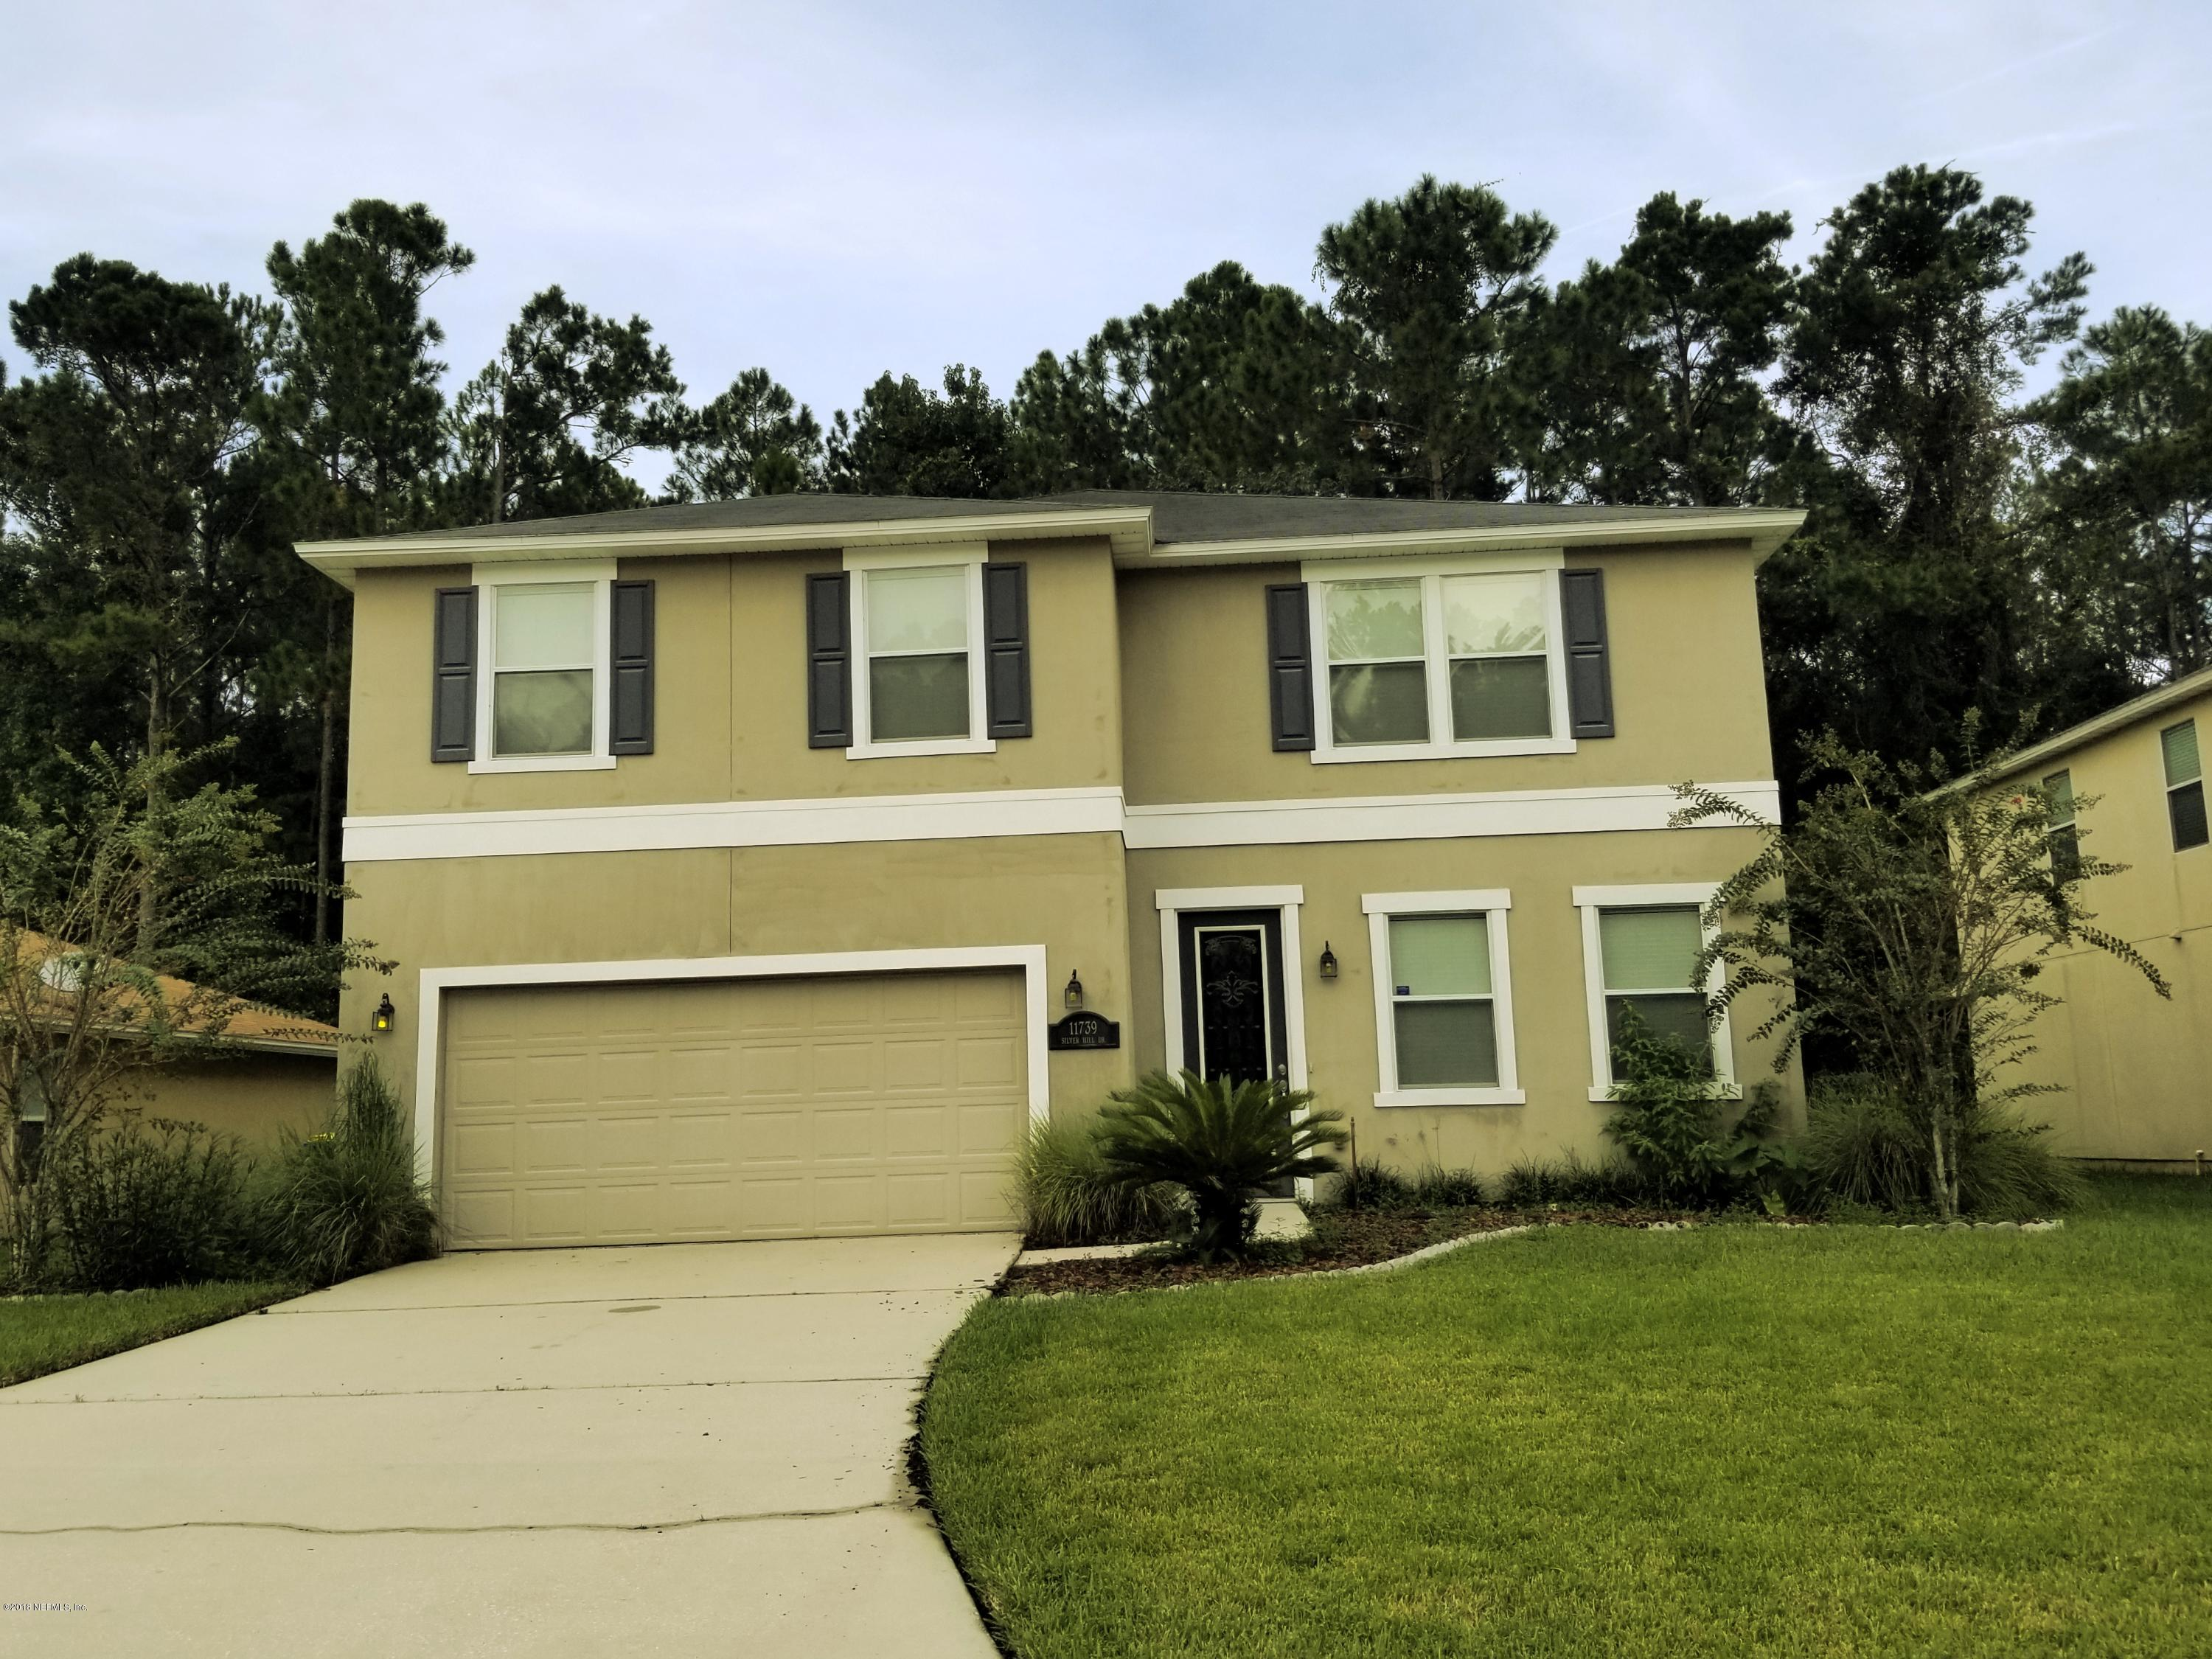 11739 SILVER HILL, JACKSONVILLE, FLORIDA 32218, 4 Bedrooms Bedrooms, ,2 BathroomsBathrooms,Residential - single family,For sale,SILVER HILL,957417